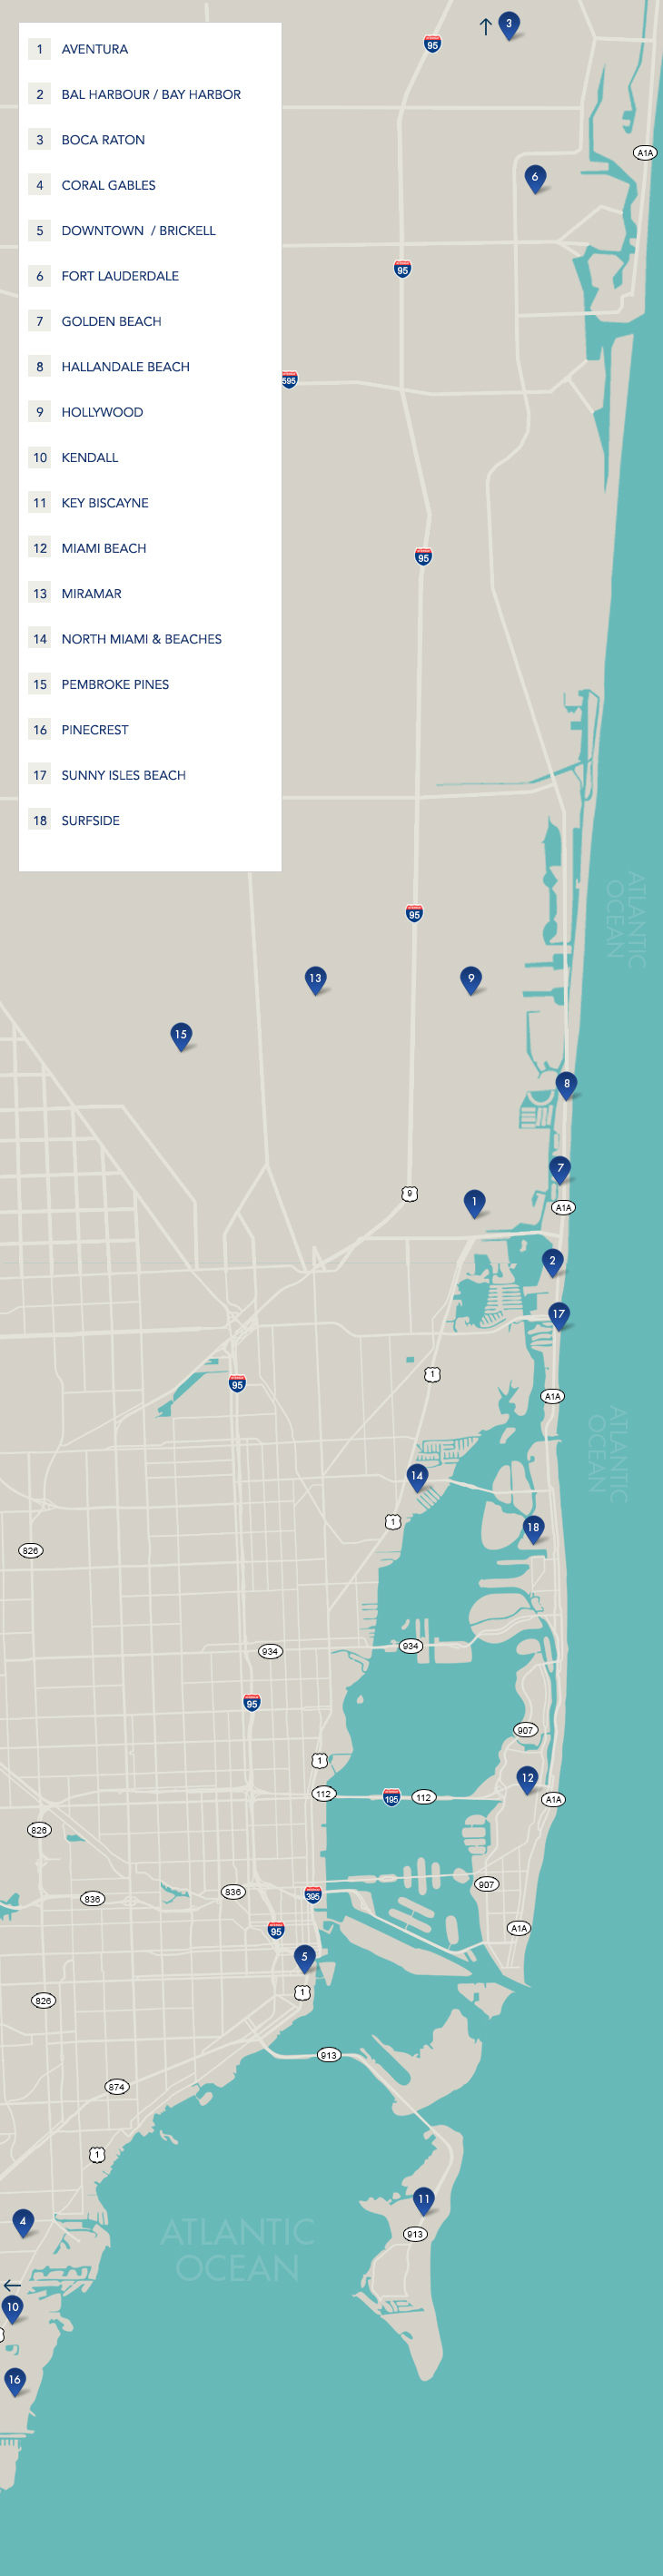 South Florida Neighborhoods | Map Of South Florida - Sunny Isles Florida Map